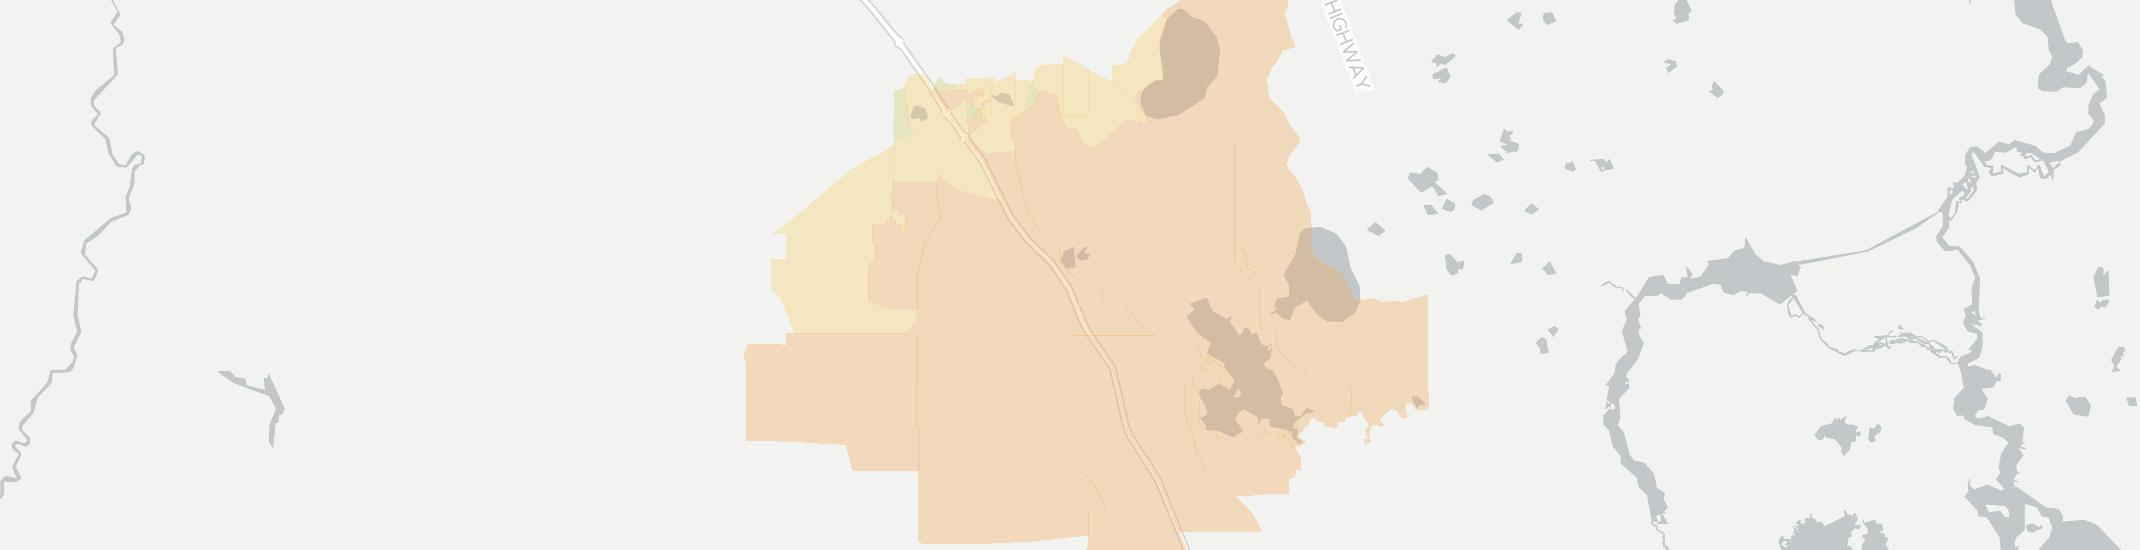 Micanopy Internet Competition Map. Click for interactive map.